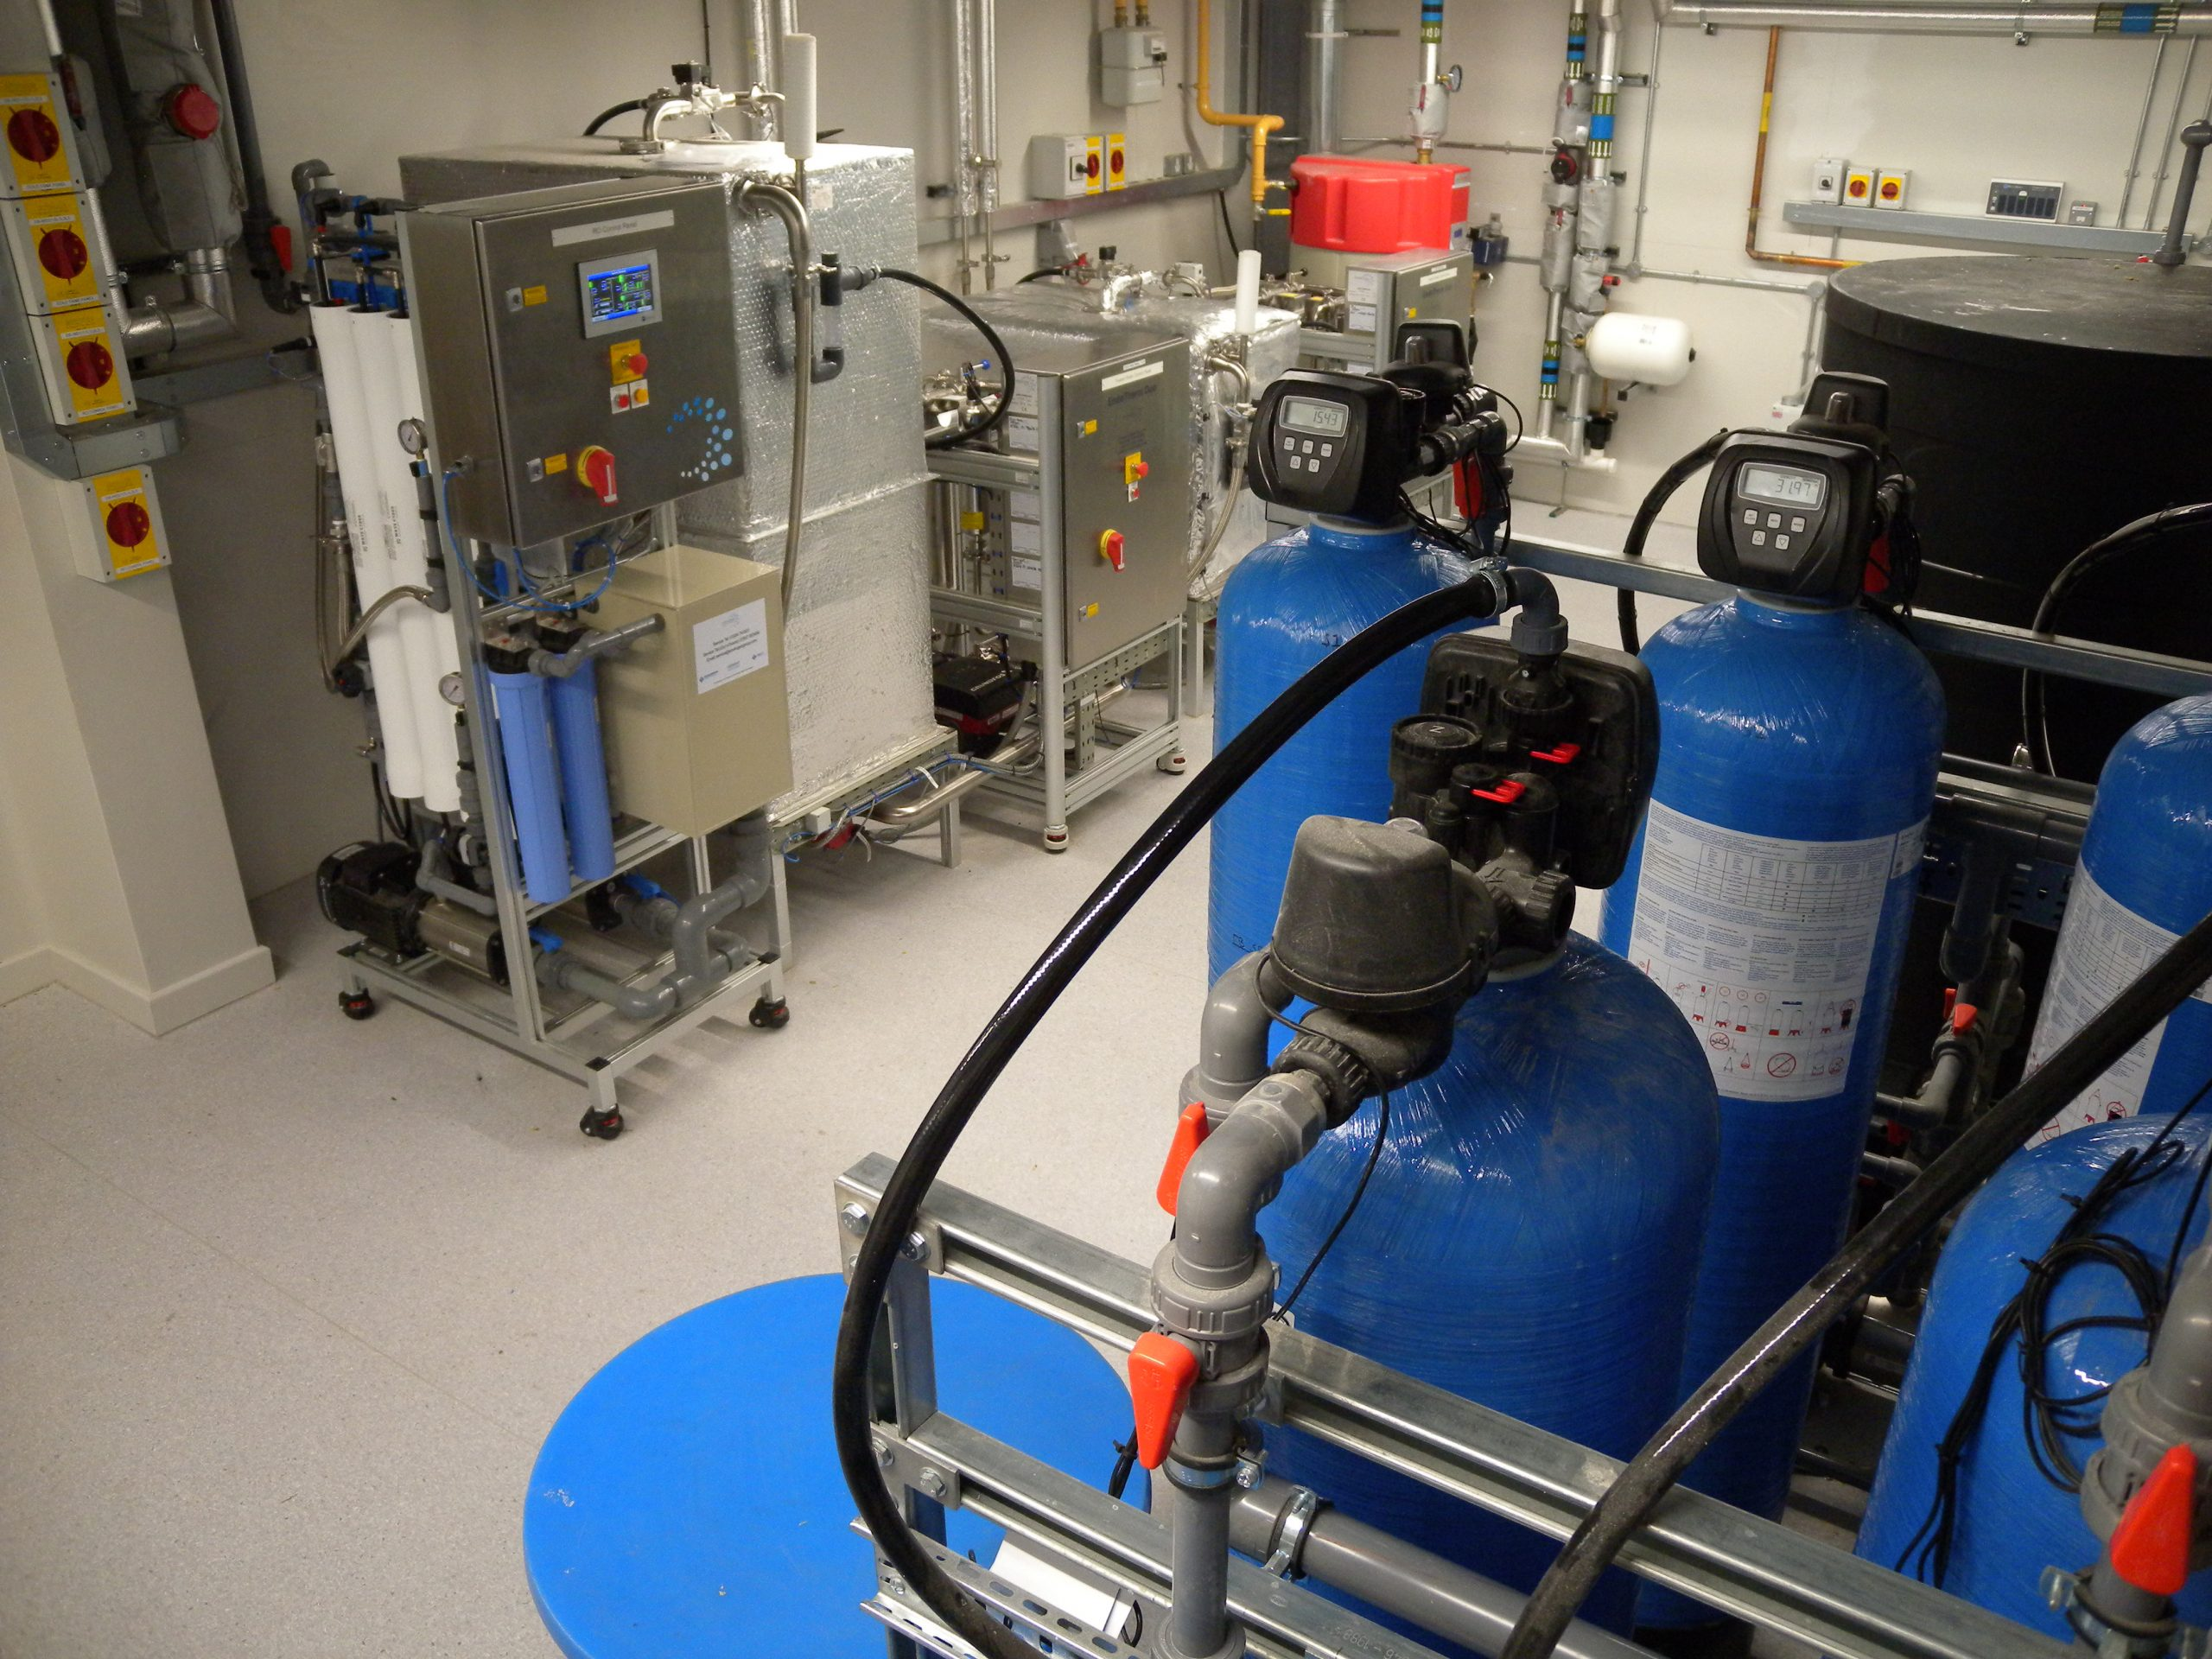 RO system at Pinderfields Hospital